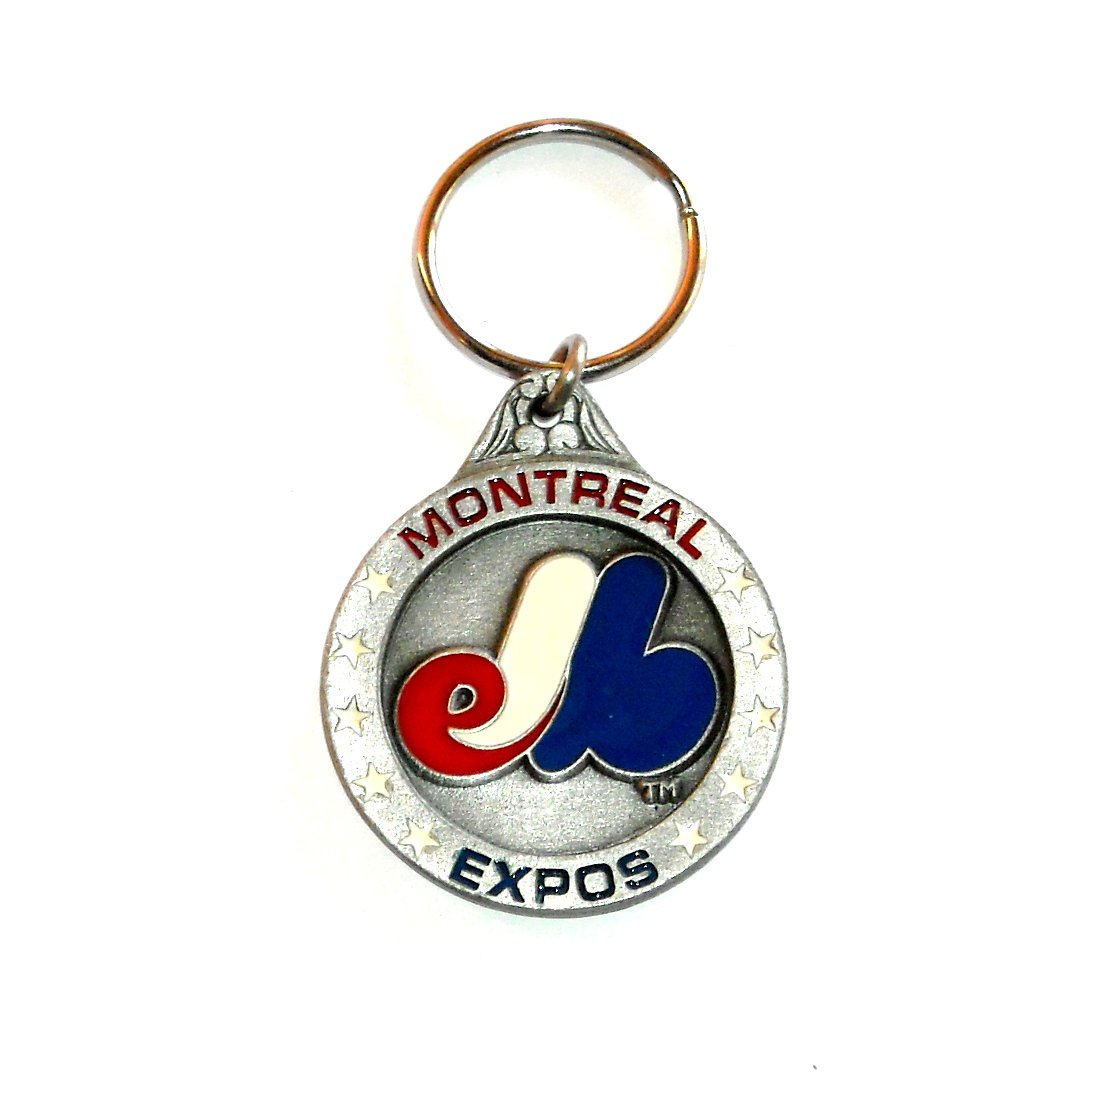 Montreal Expos National League Baseball Fob Key Ring Keychain